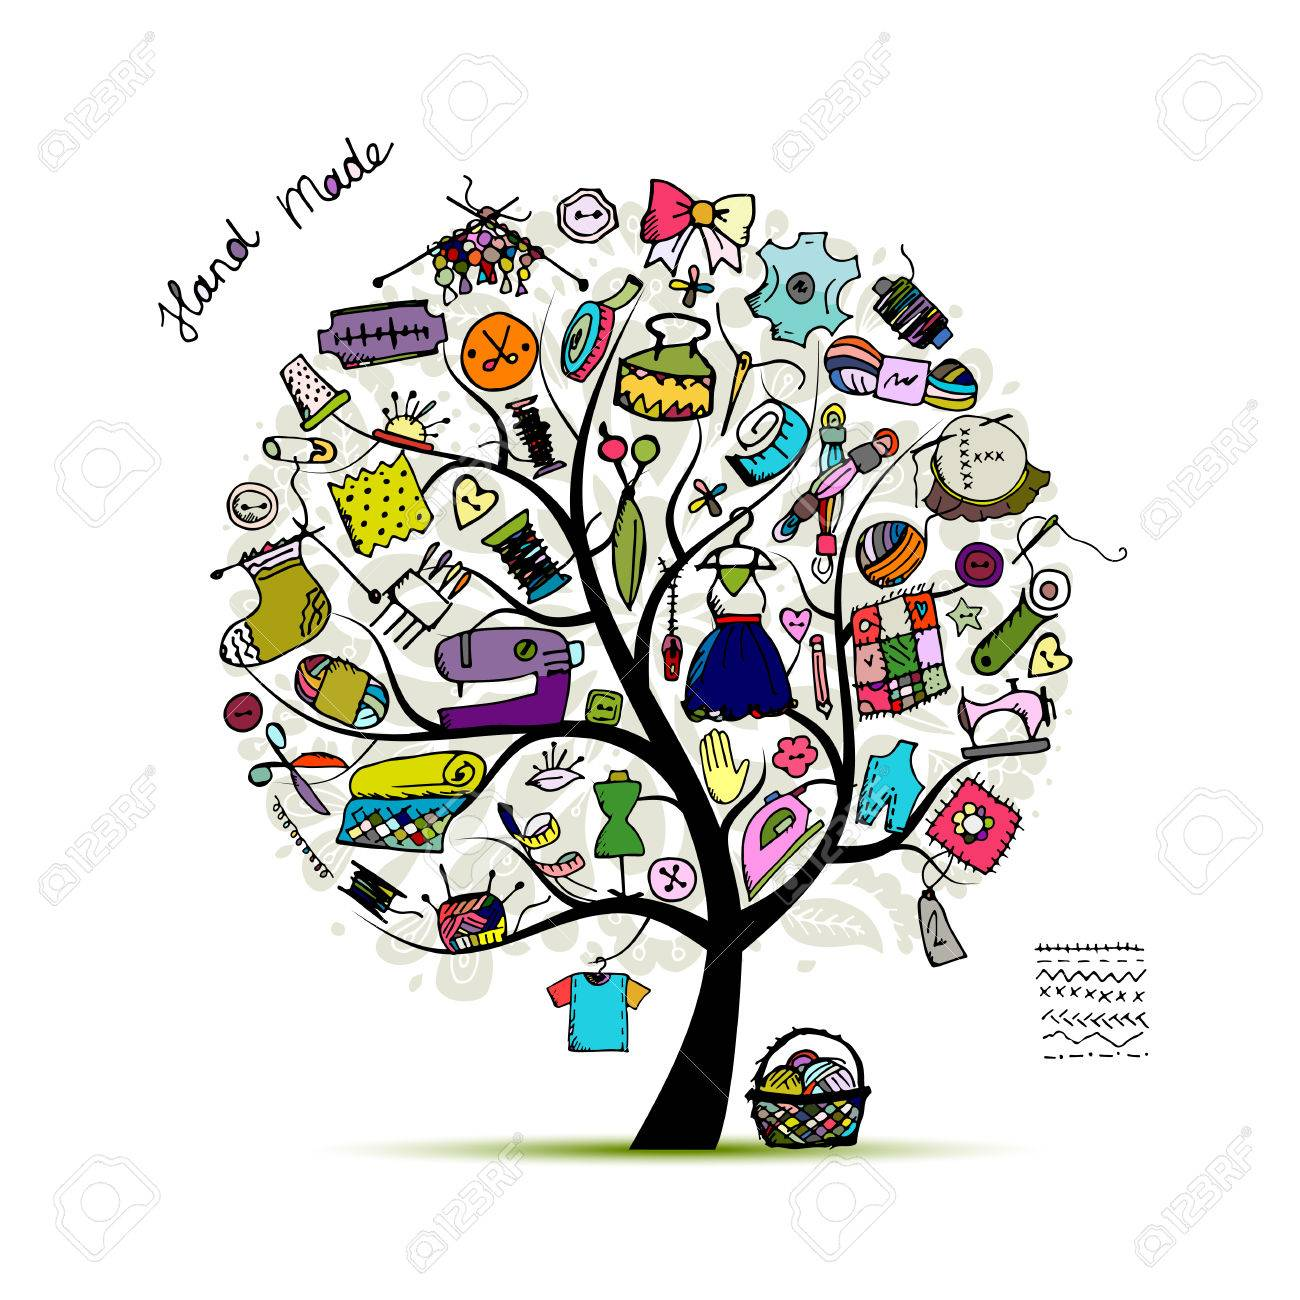 Sewing tree, sketch for your design. Vector illustration - 59100785